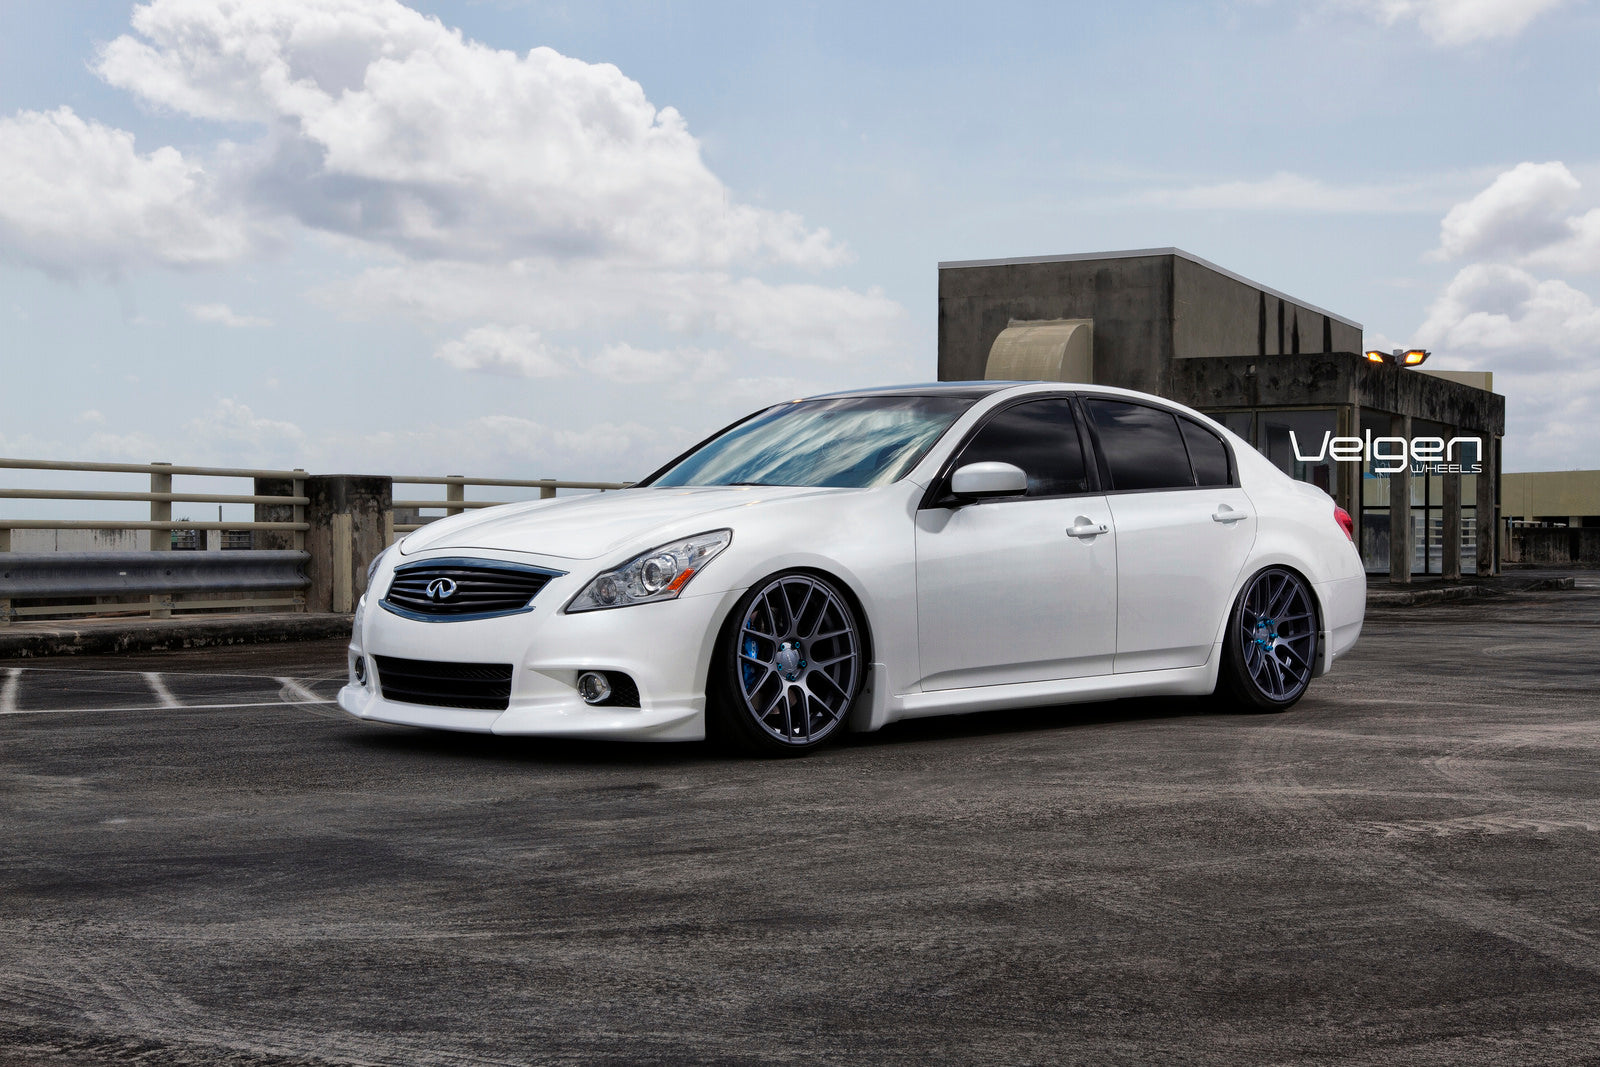 7-INFINITI G37 ON VELGEN WHEELS VMB7